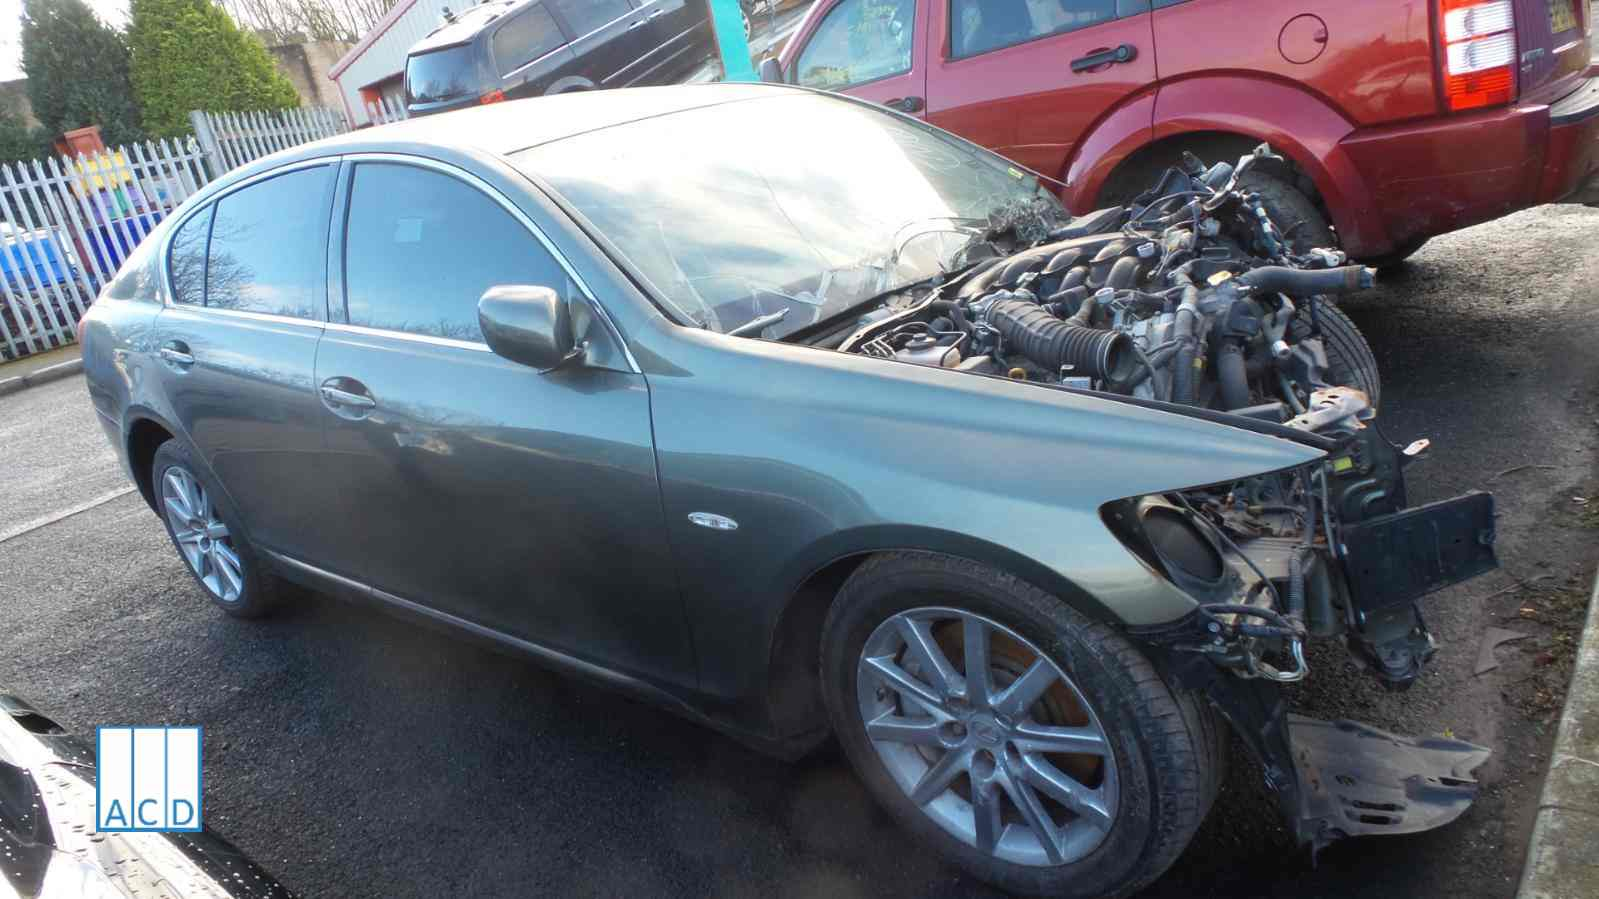 Lexus GS300 3.0L Petrol 6-Speed Automatic 2005 #2708 01